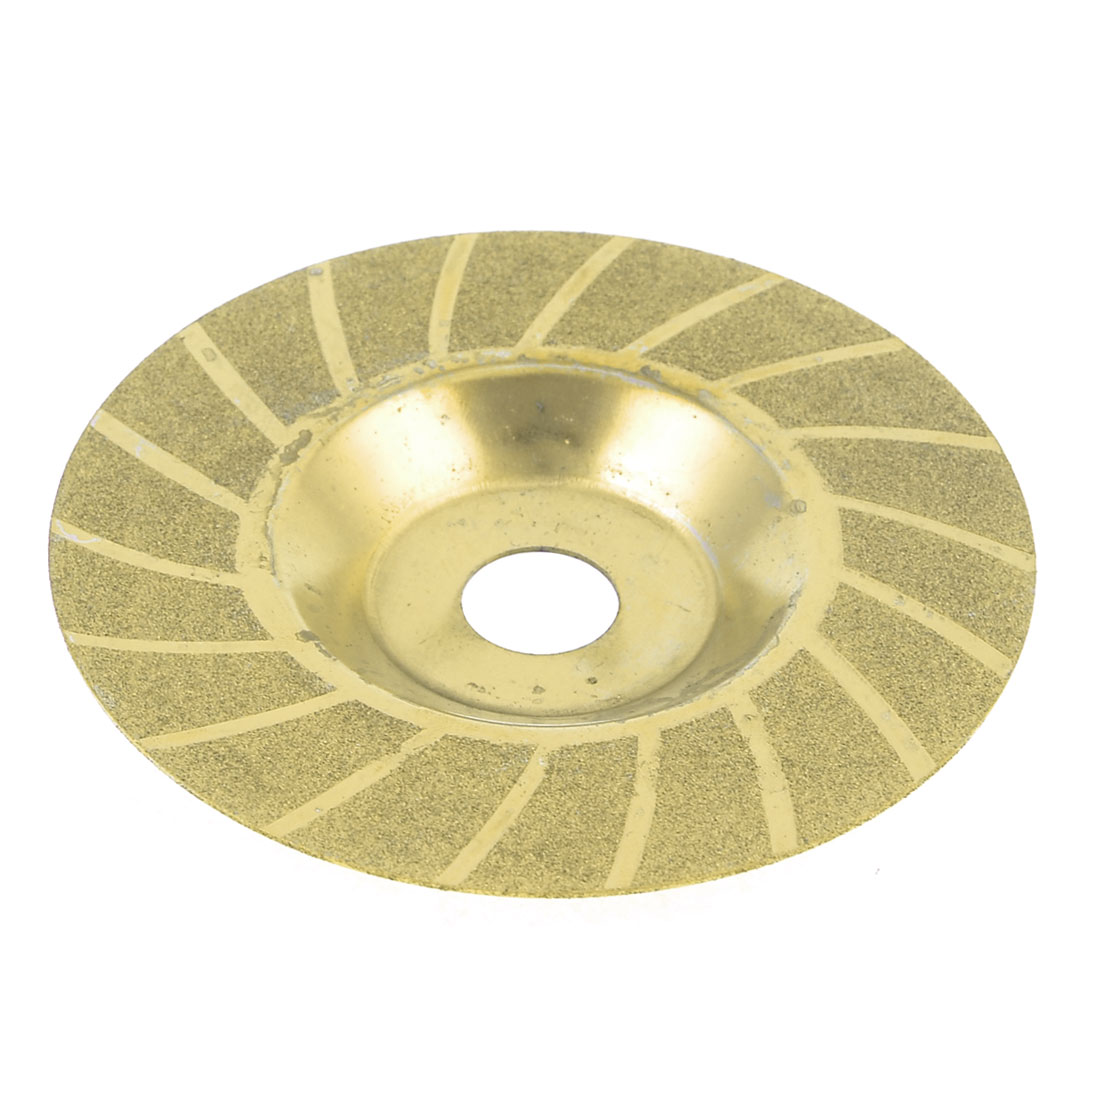 98mm x 16mm x 0.8mm Glass Diamond Saw Slice Cutting Disc Gold Tone